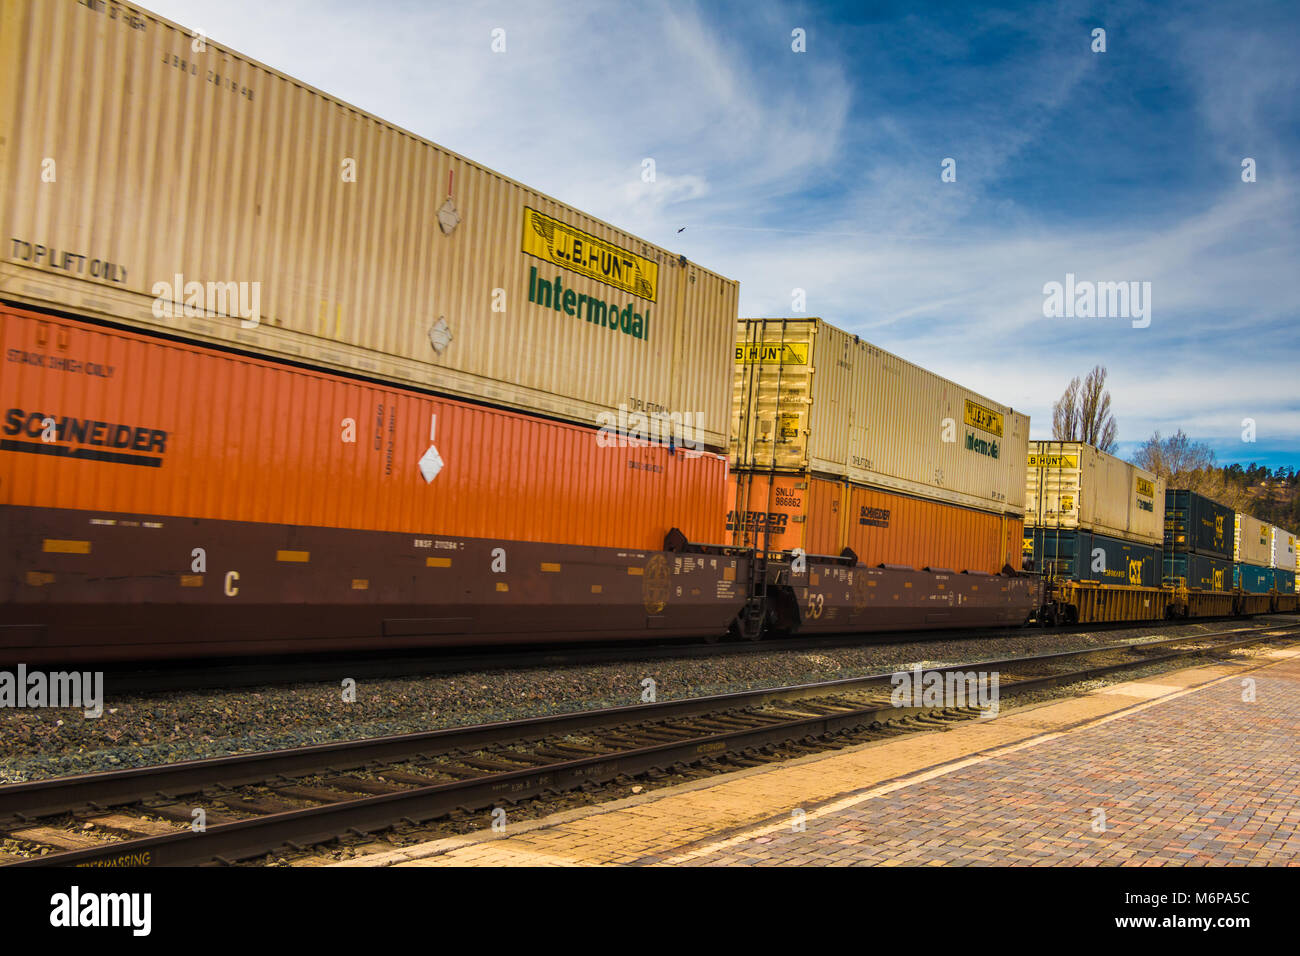 Intermodal Container Train - Stock Image